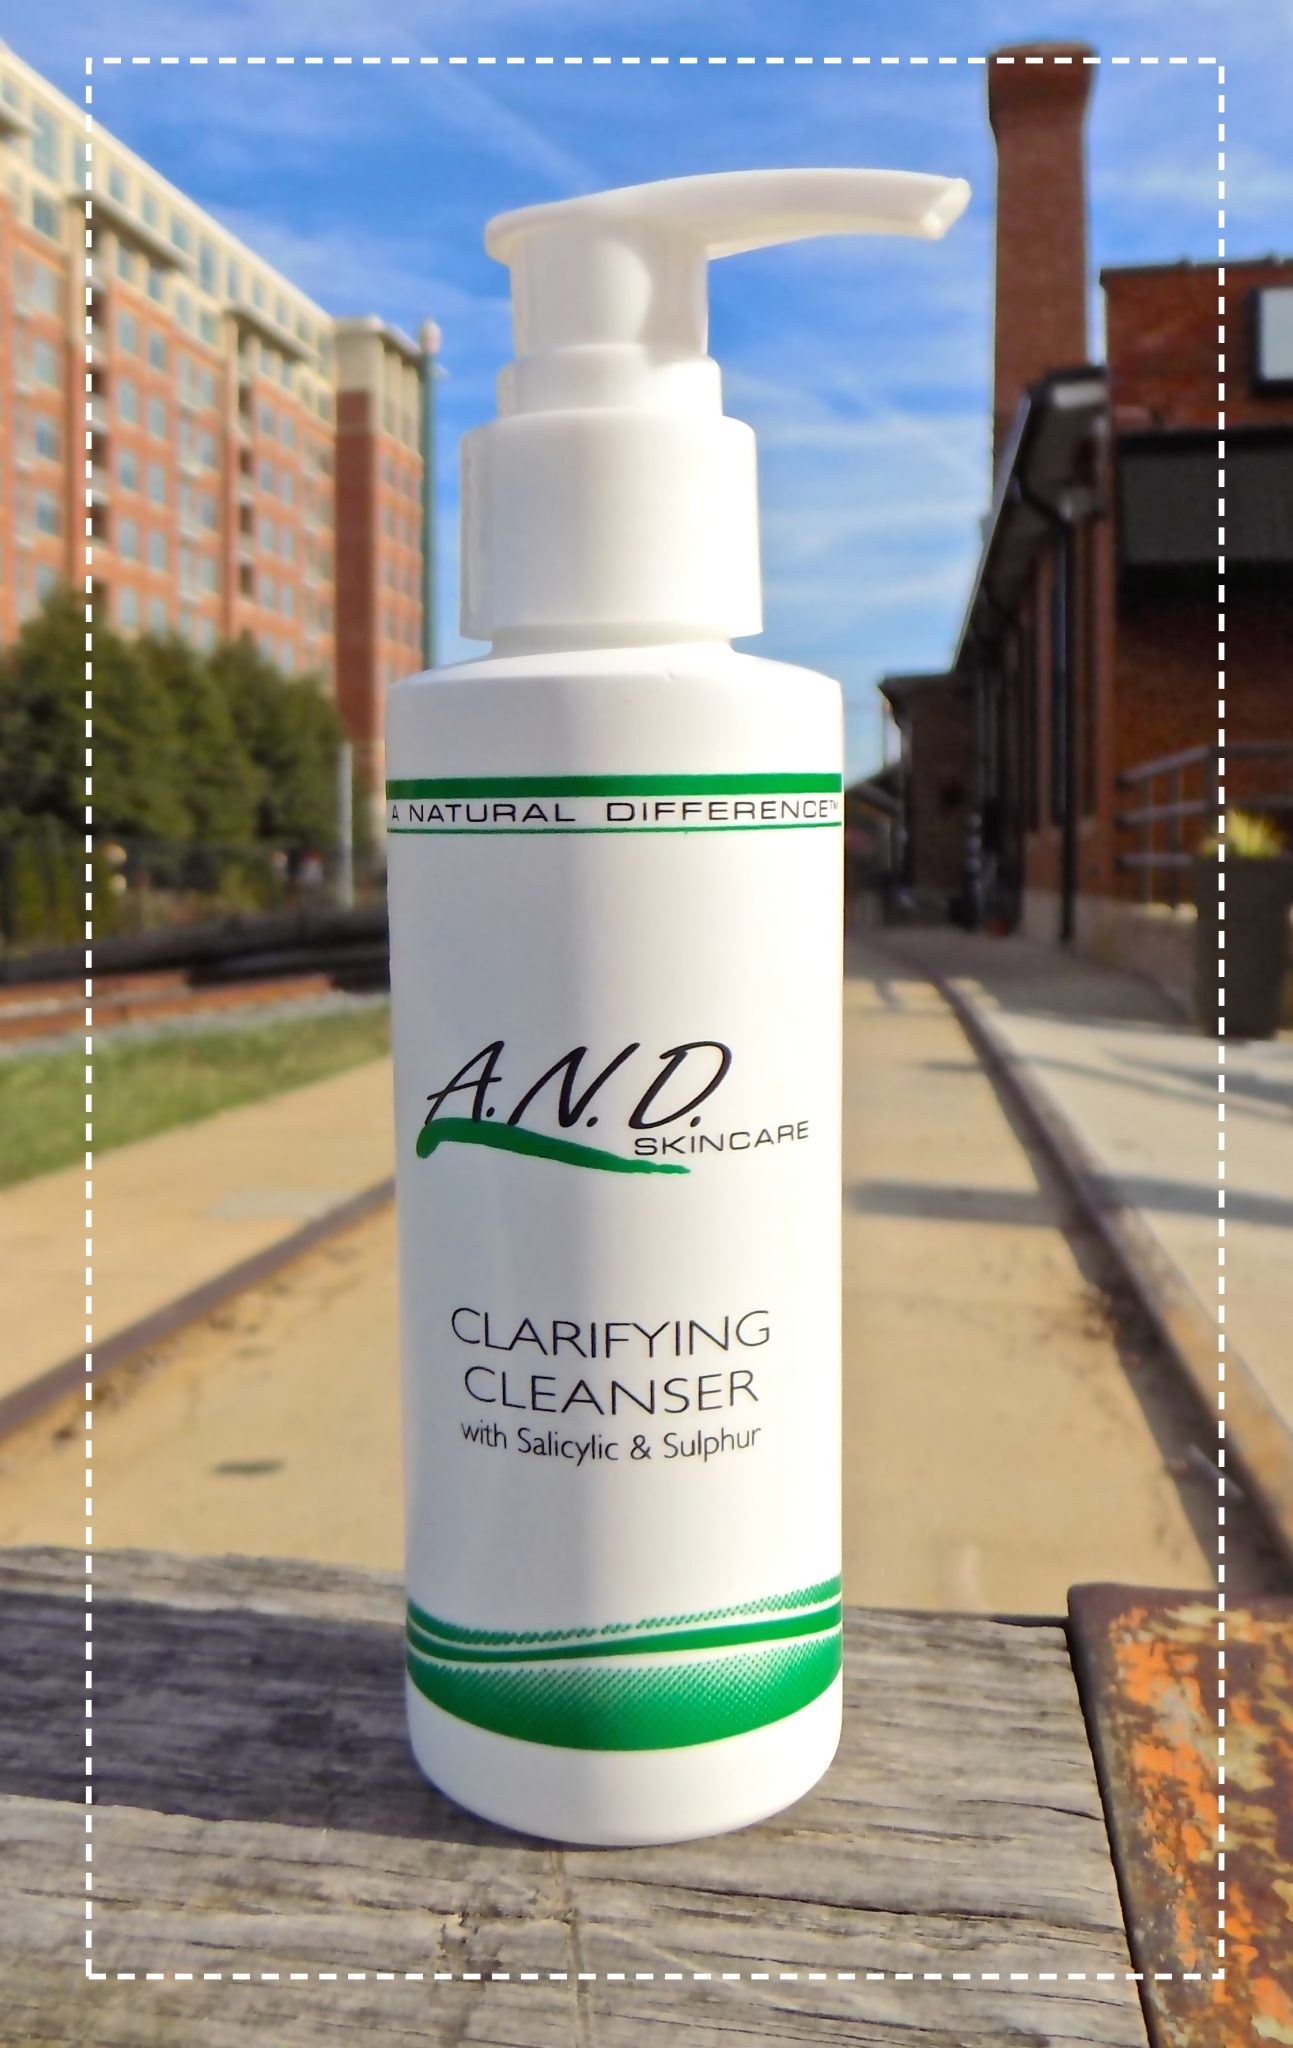 Clarifying Cleanser with Salicylic & Sulphur